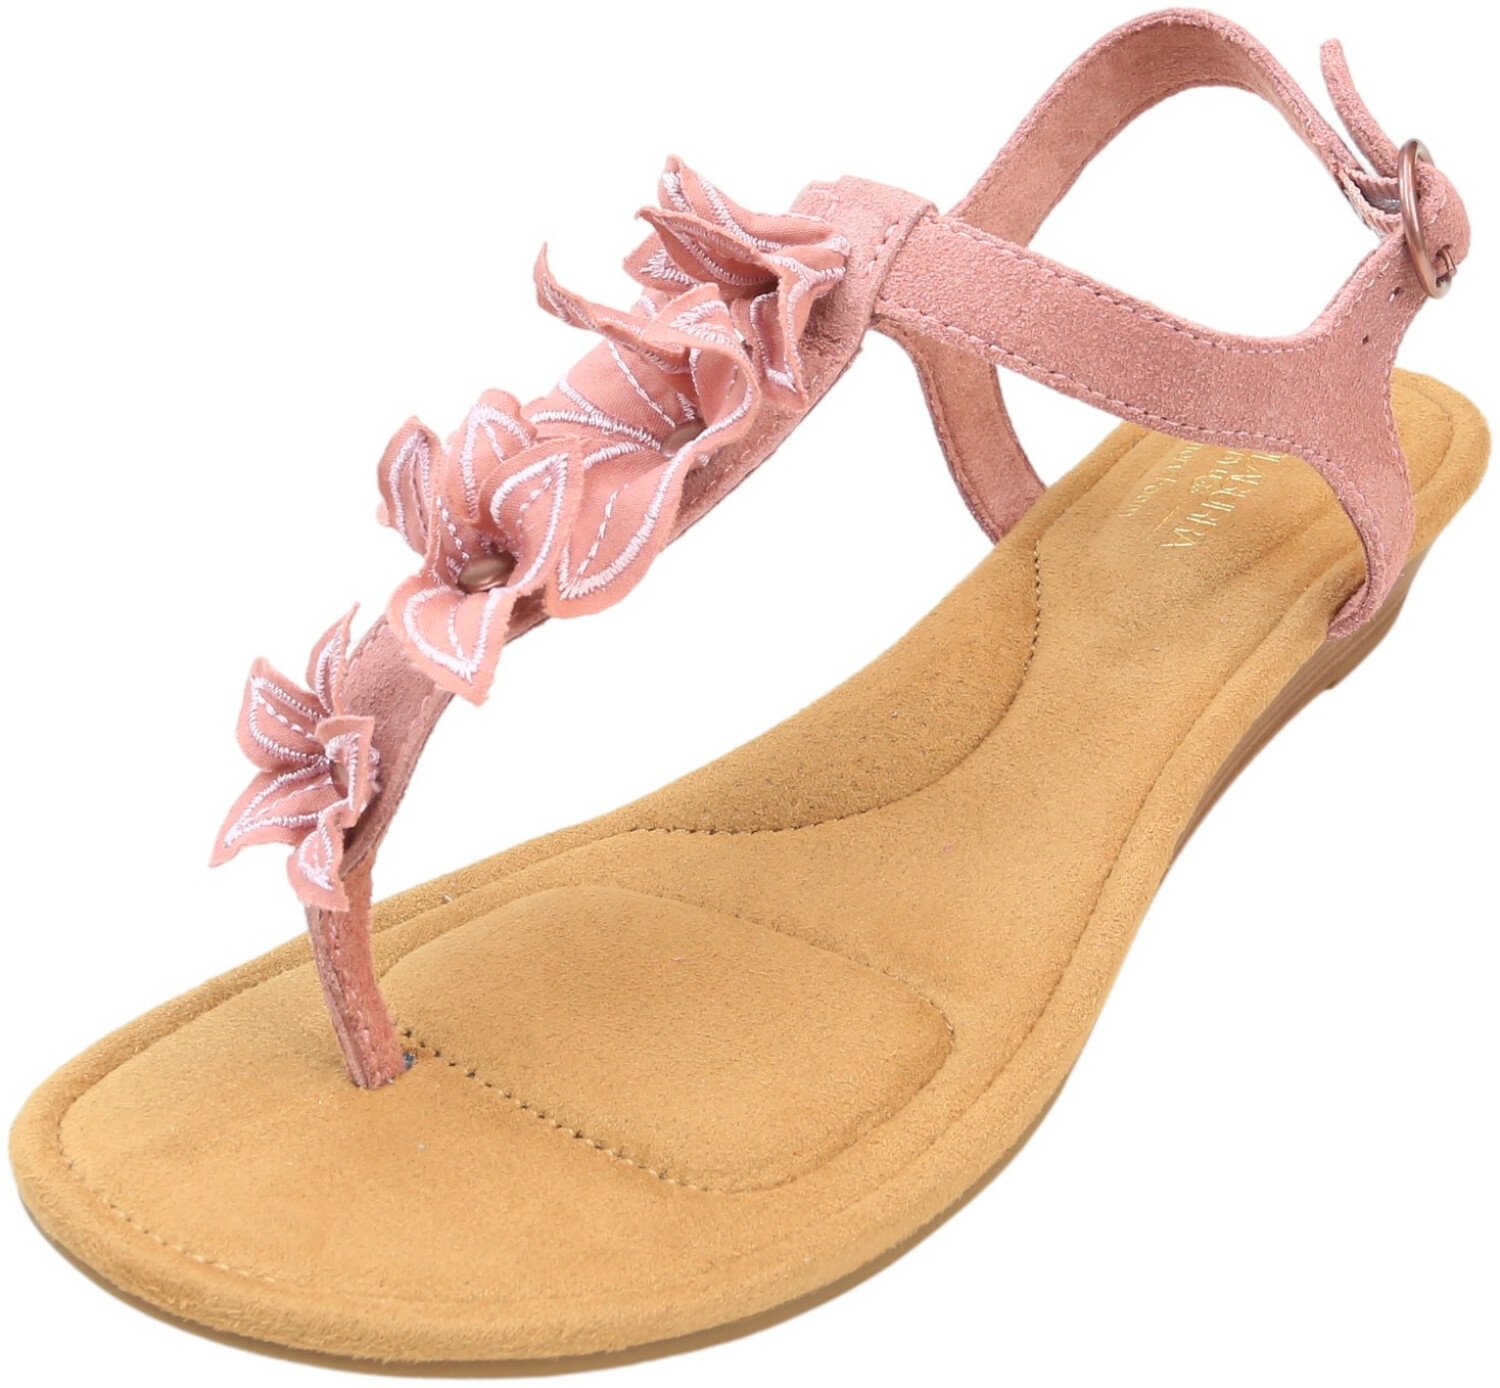 Koolaburra By Ugg Women's Arely Ash Rose Suede Wedged Sandal - 7.5M